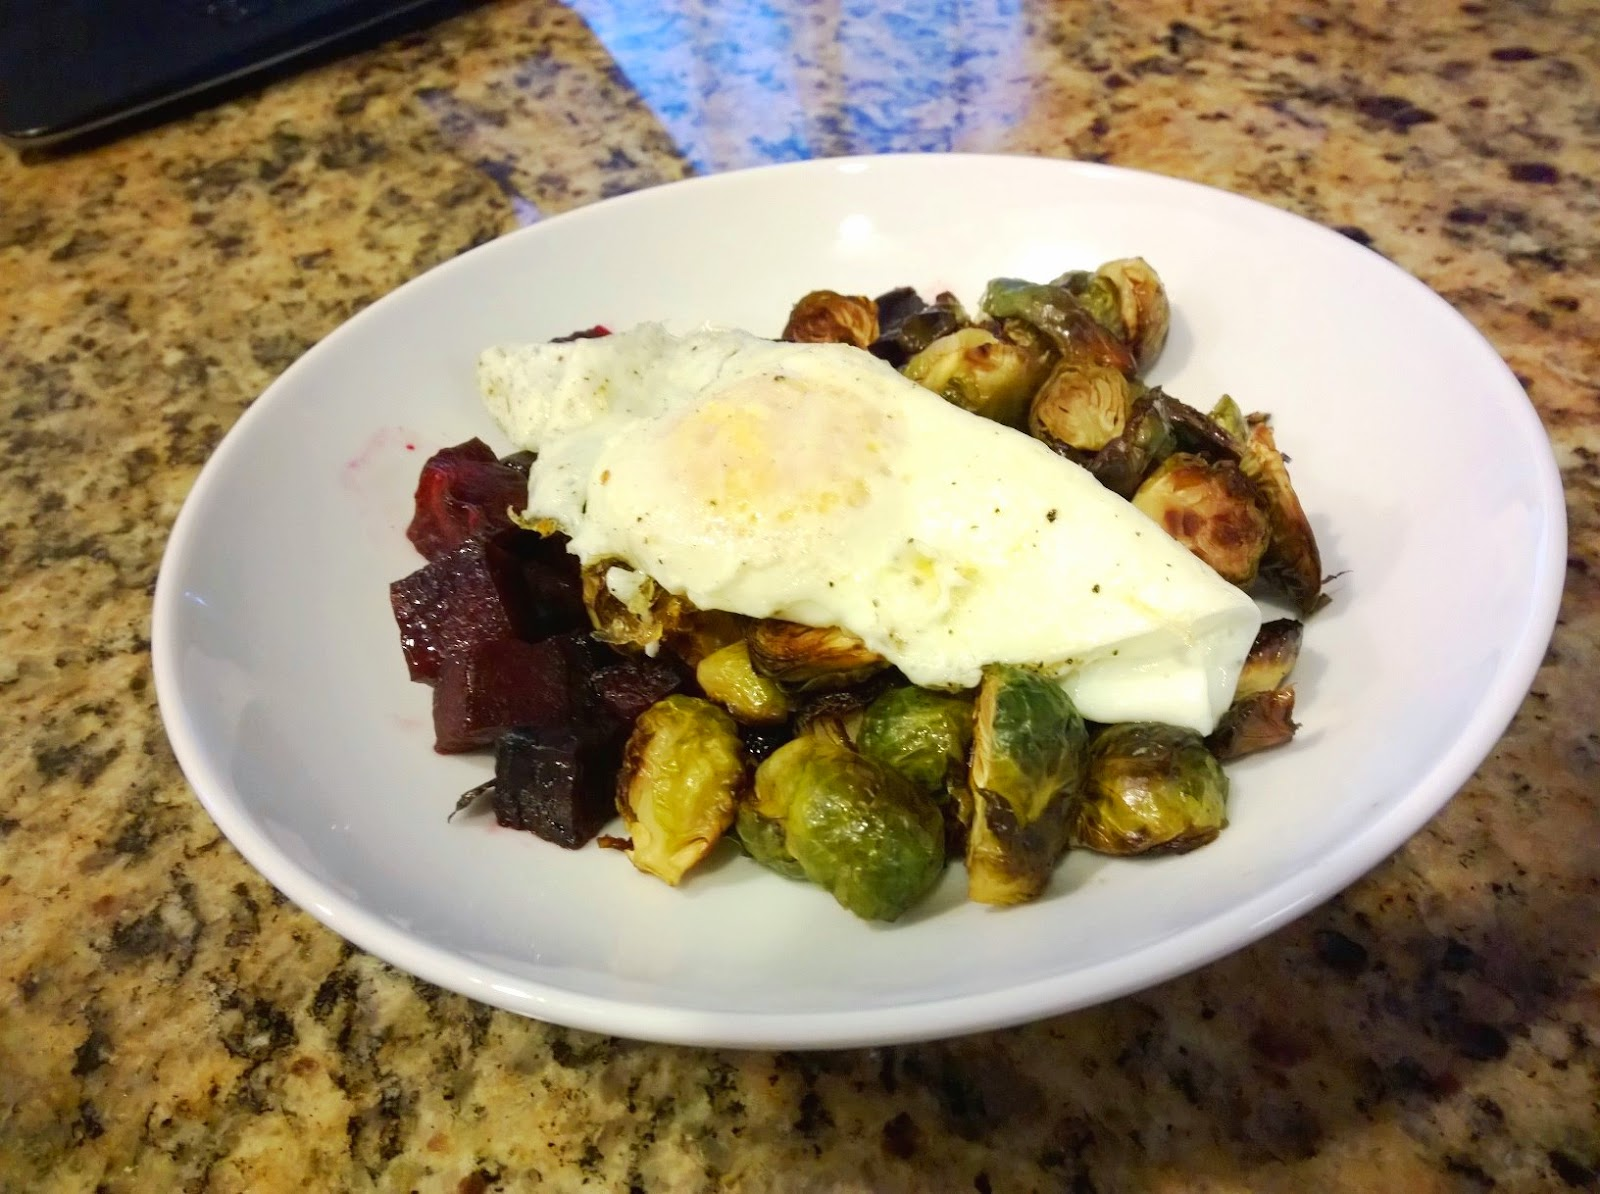 roasted beets and brussels sprouts with a fried egg